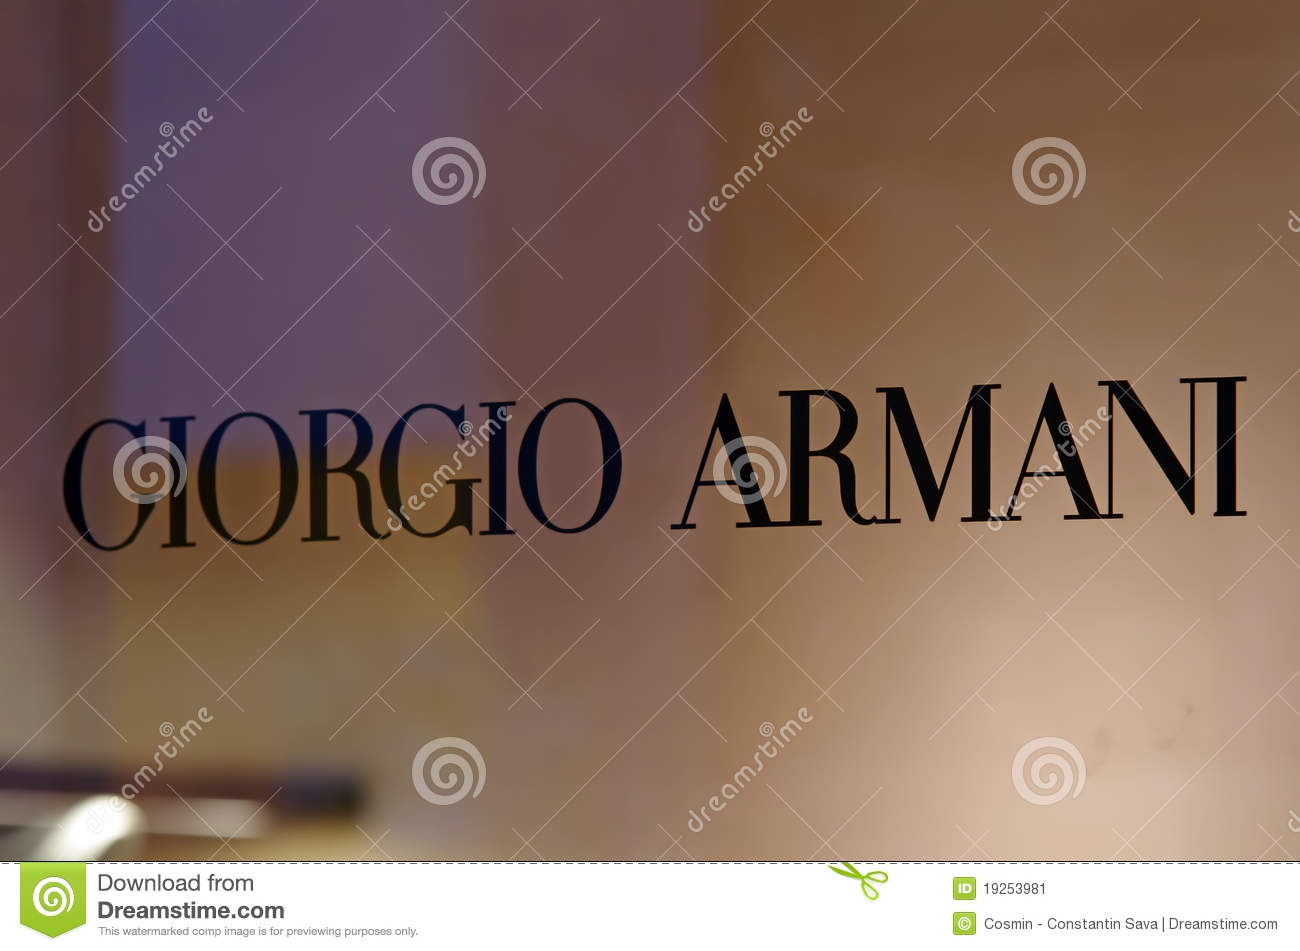 marketing plan for brand of giorgio armani Luxury brands are conceptually different and require a specific approach to   core of their marketing strategy2 and, in luxury brand management, experiences  are  for example, giorgio armani created a homogeneous and.